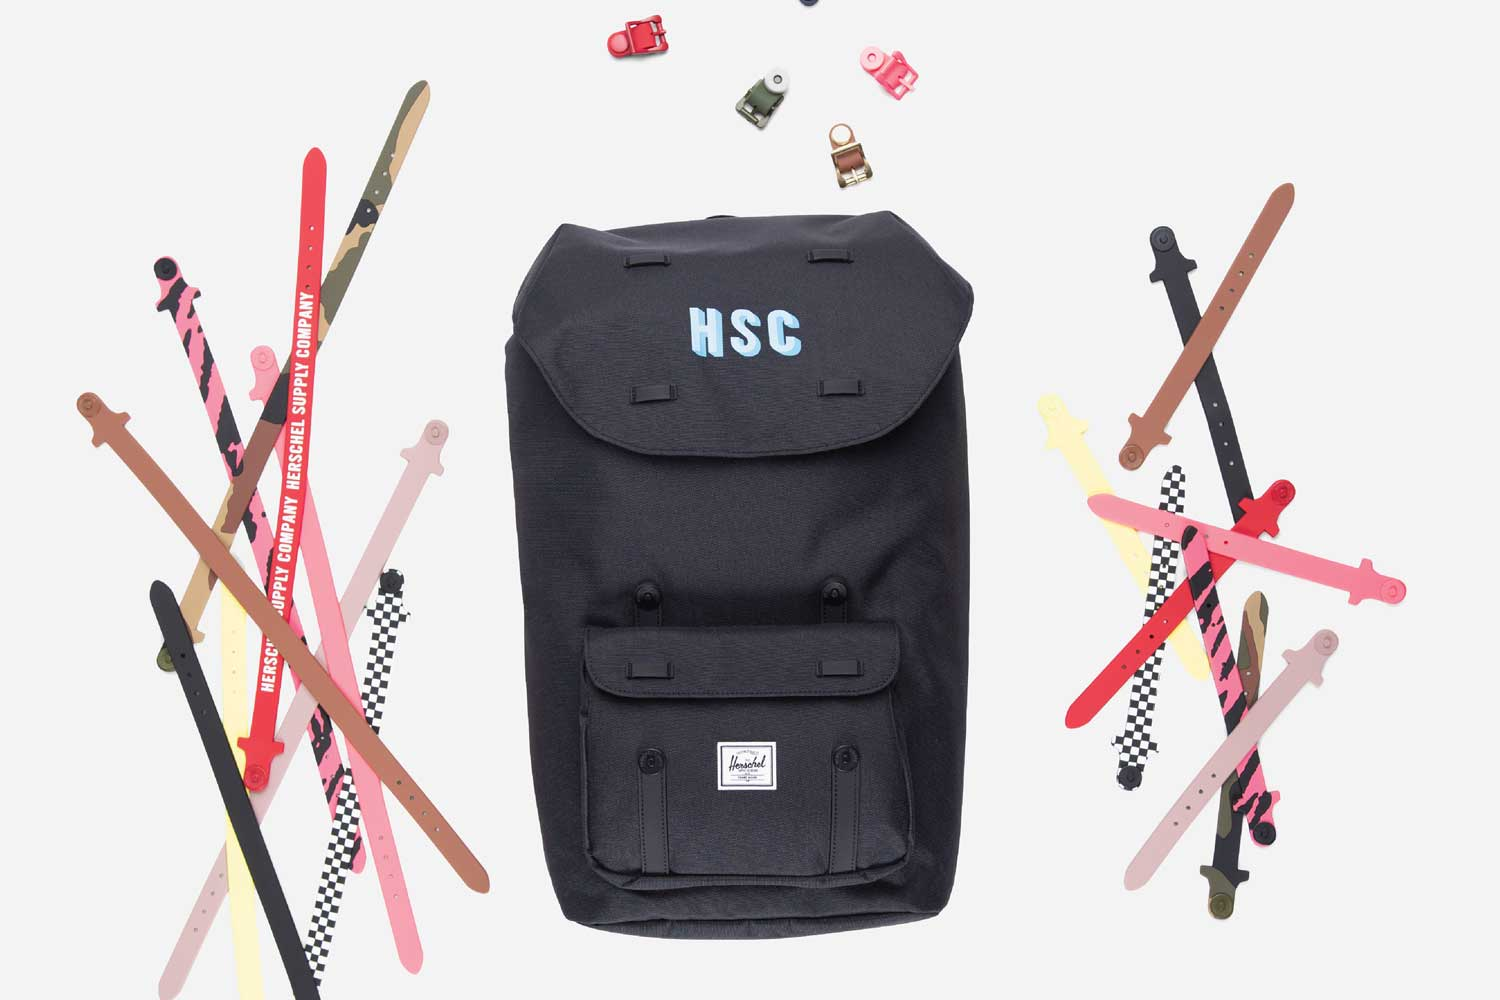 Start with the classic backpack - Choose your favorite color